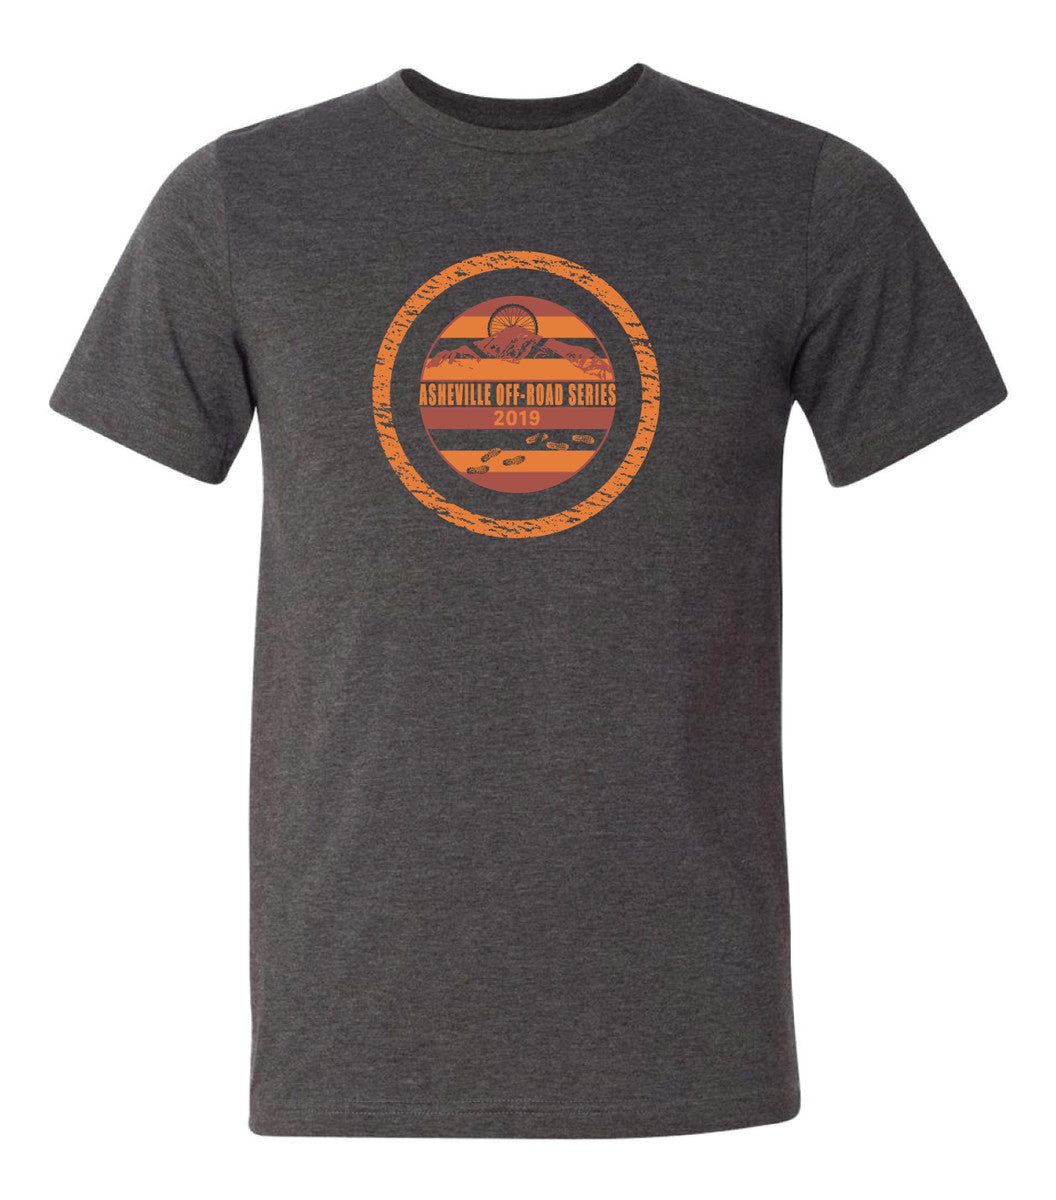 Asheville Off Road Series Race Shirt